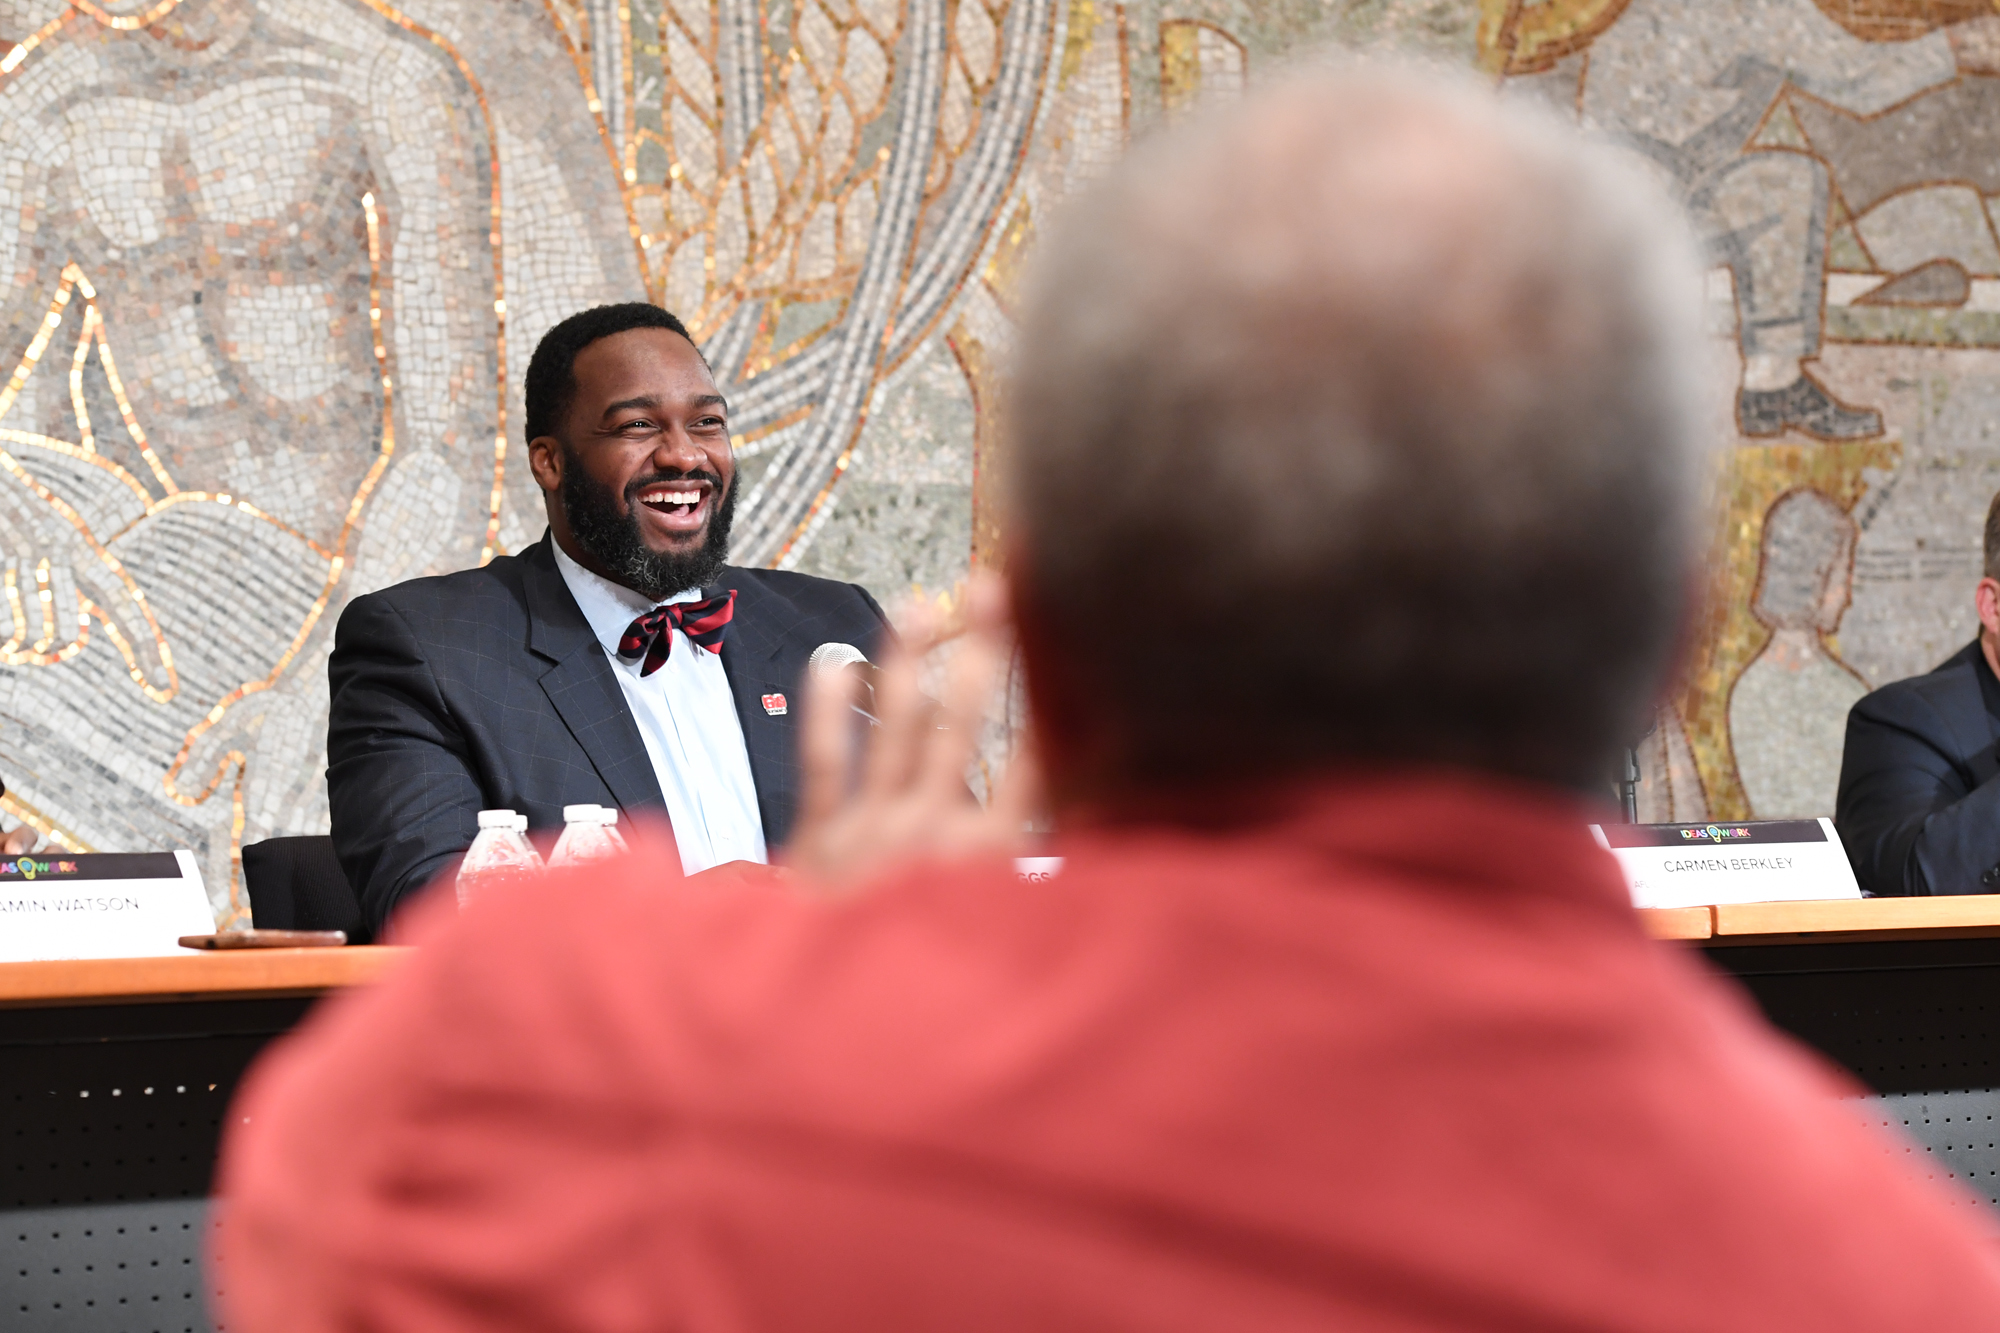 NFLPA Counsel Joe Briggs laughs while being asked question during the AFL-CIO's panel on the role of athletes and the labor movement when it comes to racial and social justice at the AFL-CIO on October 25, 2016 in Washington D.C. The panel, moderated by Dave Zirin, featured Director of Civil, Human and Women's Rights for the AFL-CIO Carmen Berkley, NFLPA Counsel Joe Briggs and NFLPA Vice President and Baltimore Ravens tight end Benjamin Watson discussed athletes roles in speaking out on social issues.